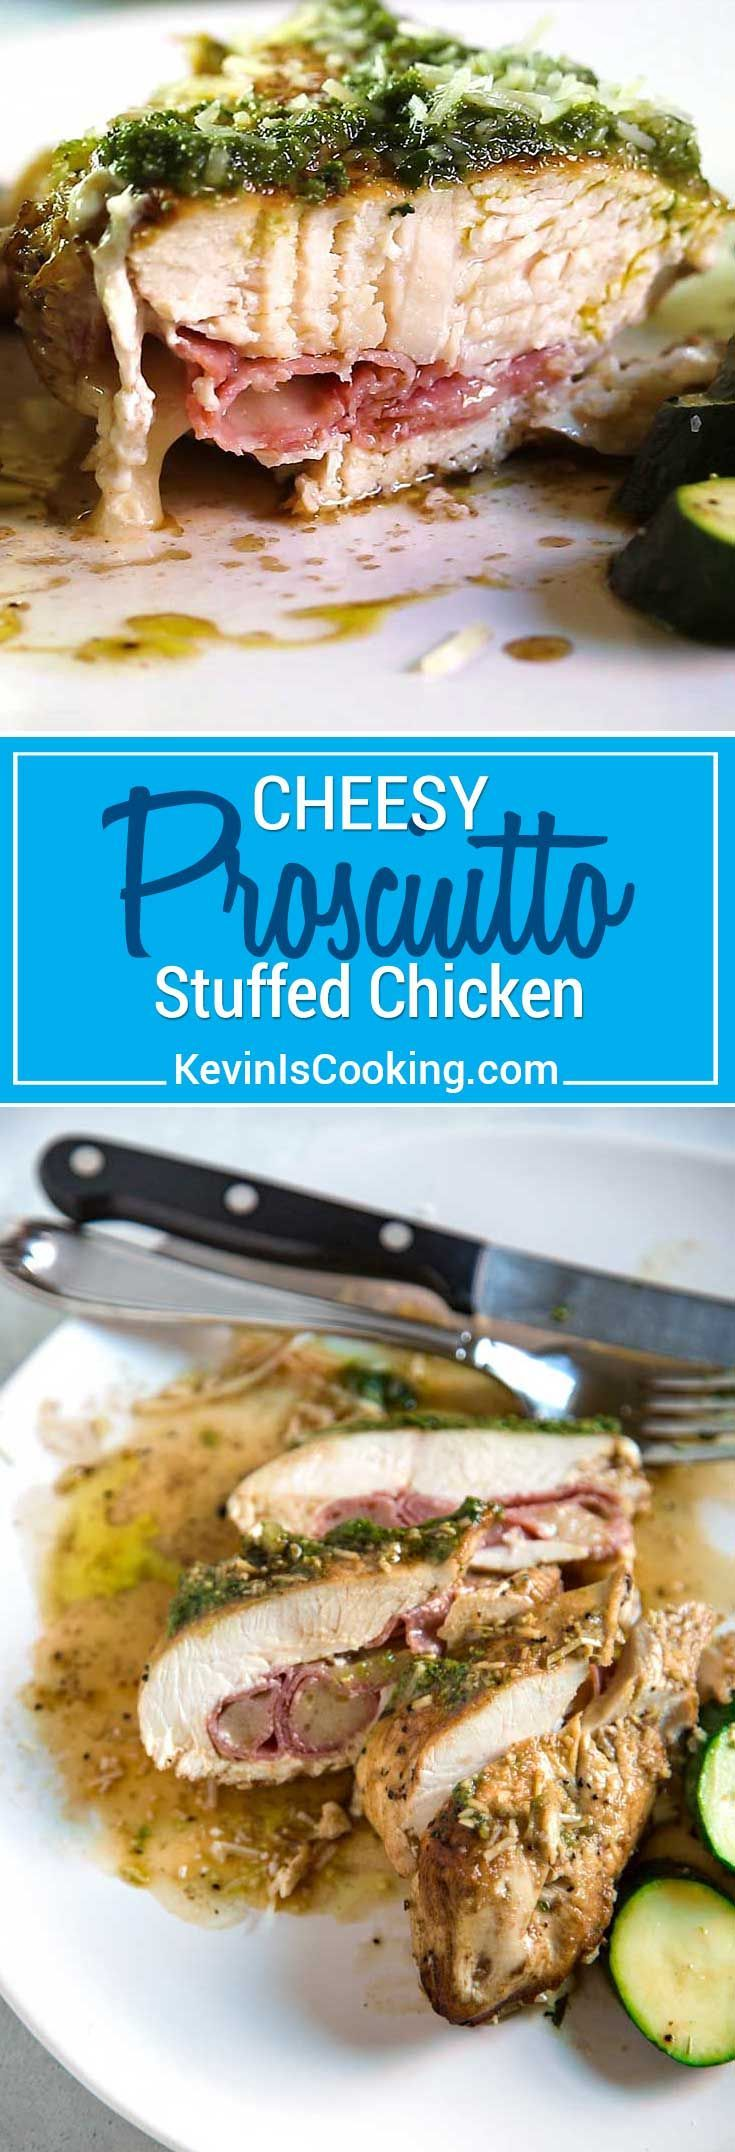 With a few on hand ingredients like pesto, mozzarella cheese and deli meat, this Cheesy Prosciutto Stuffed Chicken with Pesto is on the table in 30 minutes! #chicken #easy